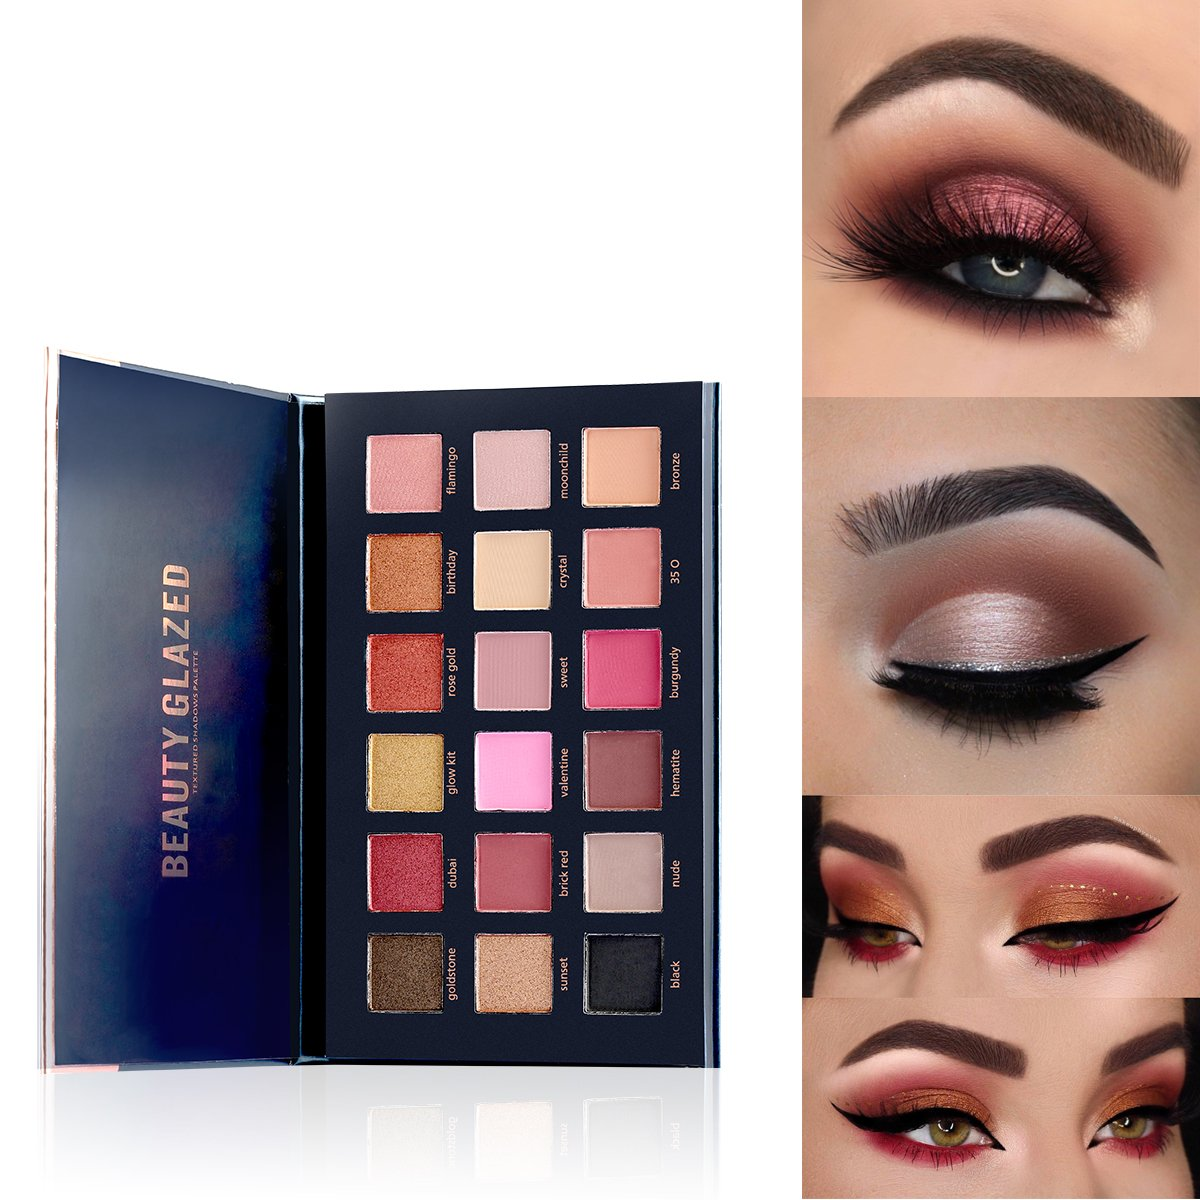 TOPBeauty New Beauty Glzaed 18 Colors Rose Gold Textured Eyeshadow Palette Makeup Contour Metallic Eye Shadow Palette